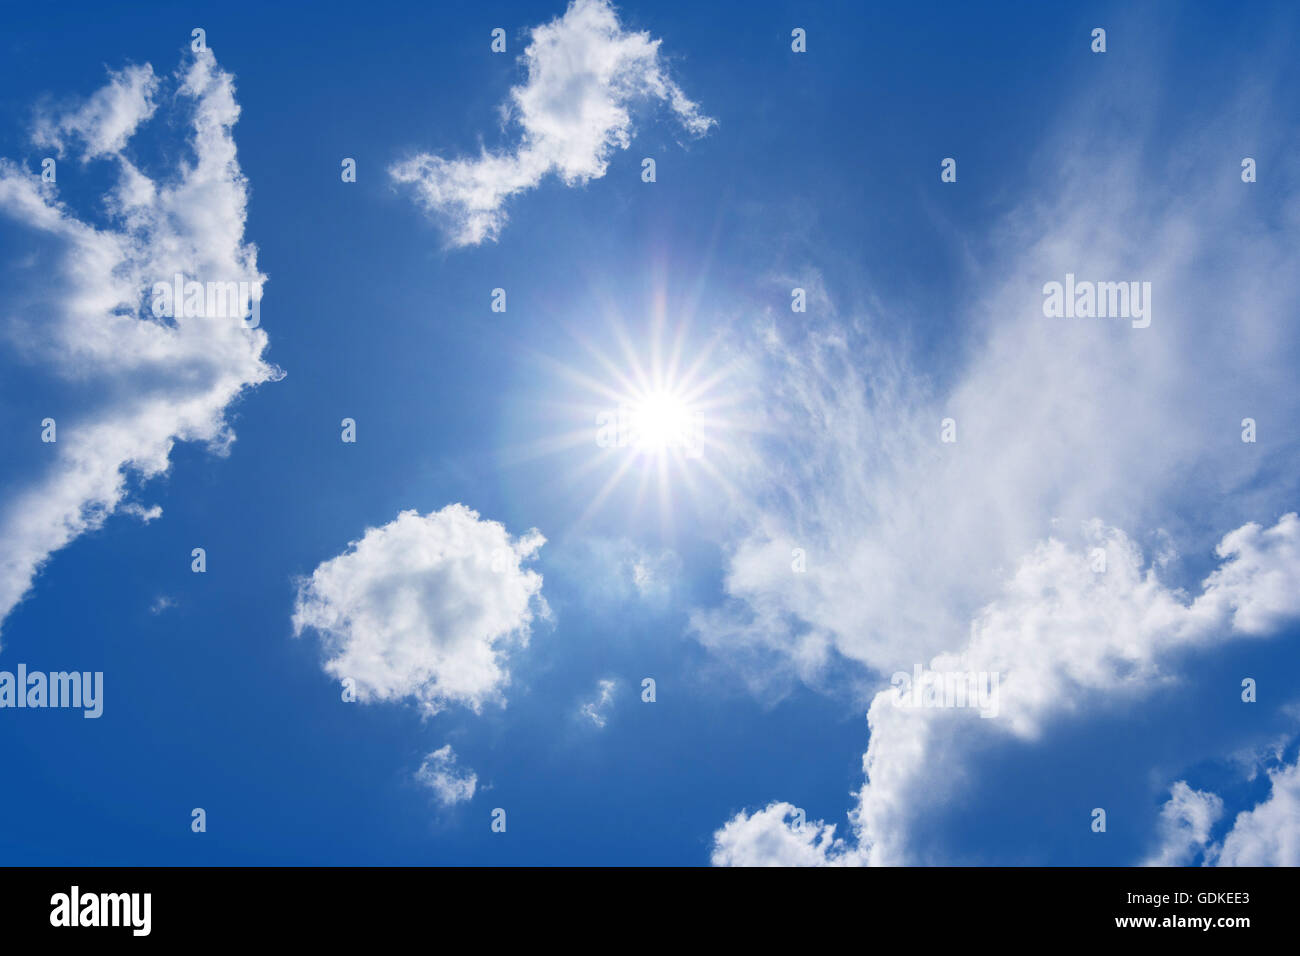 The sun shines bright in the daytime in summer. Blue sky and clouds. - Stock Image